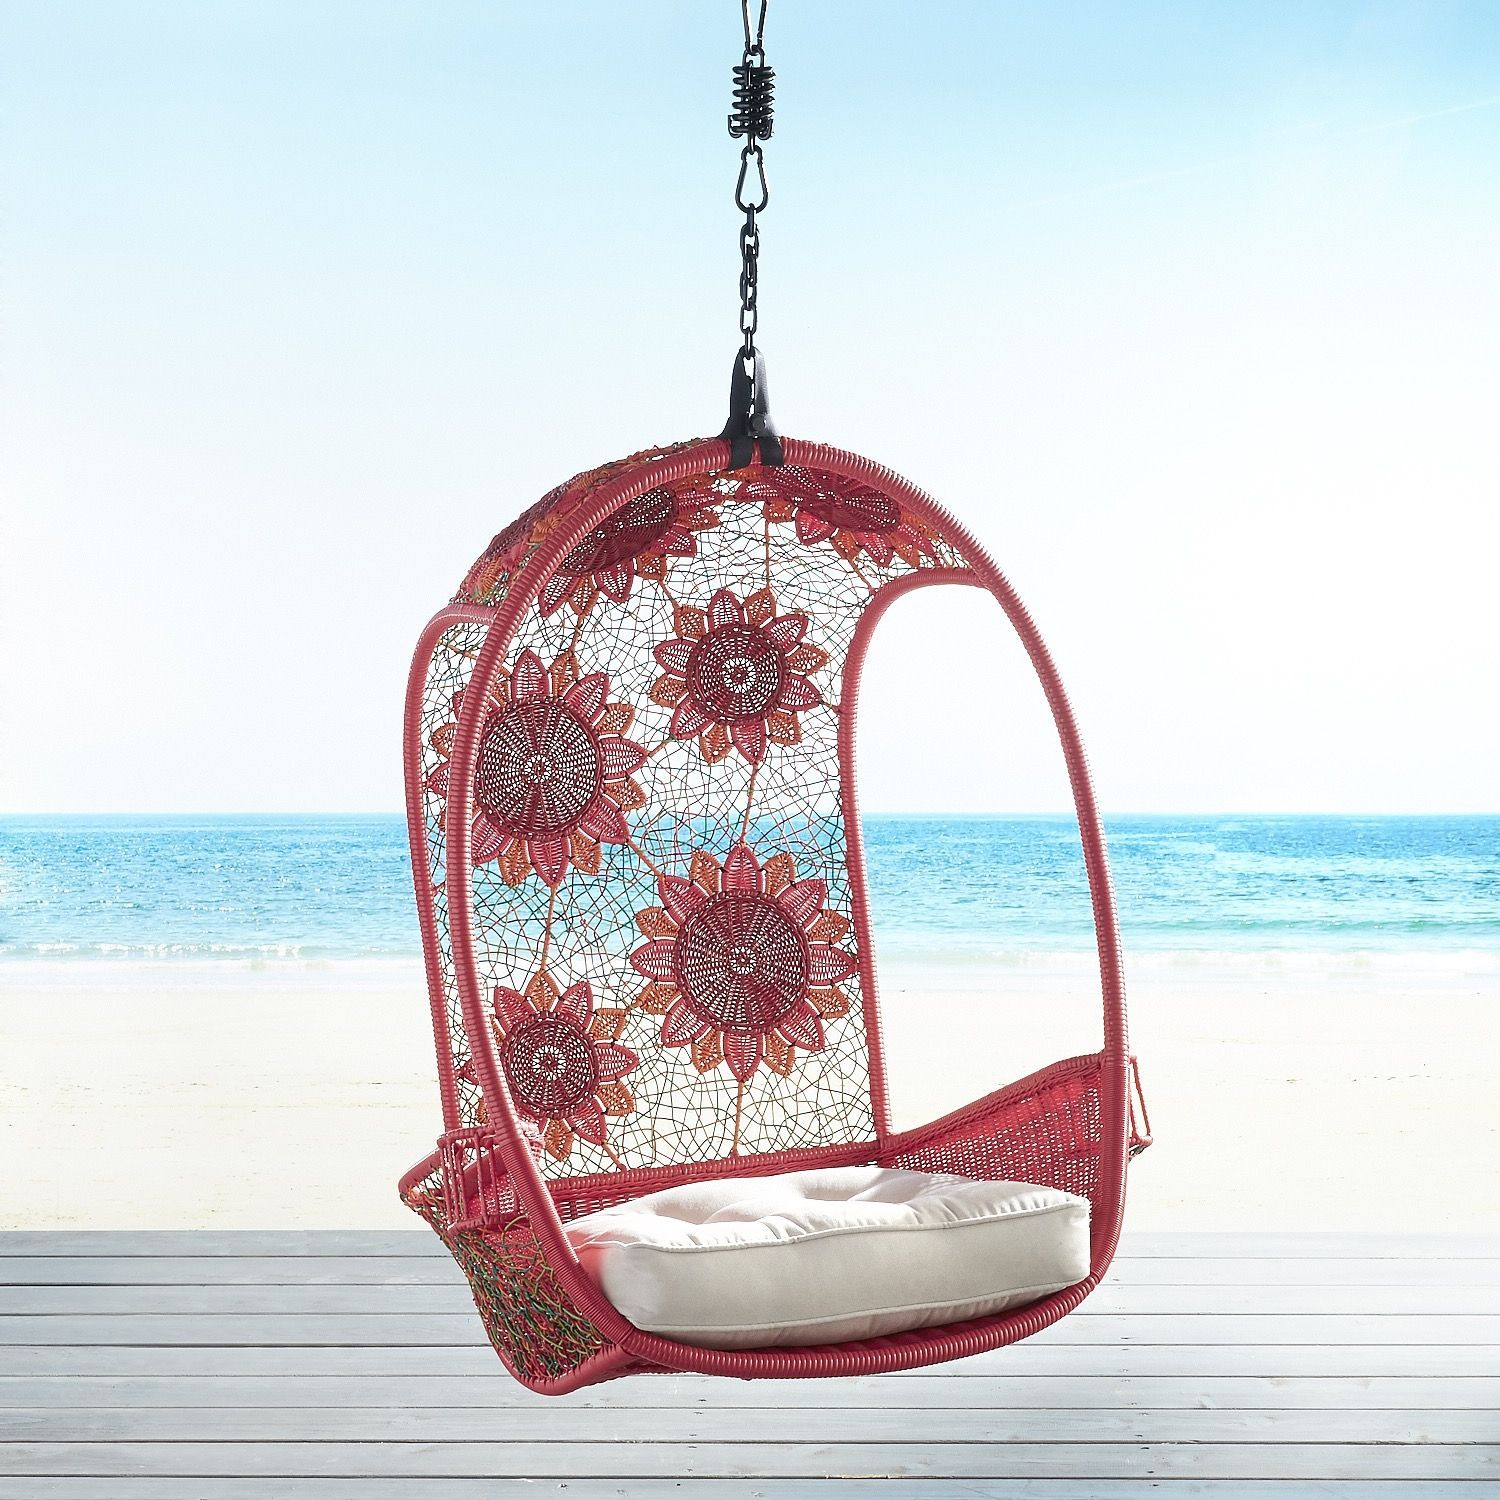 Ikea Ei Sessel Outdoor Hanging Egg Chair Ikea Ei Sitz Hängesessel Preis Single